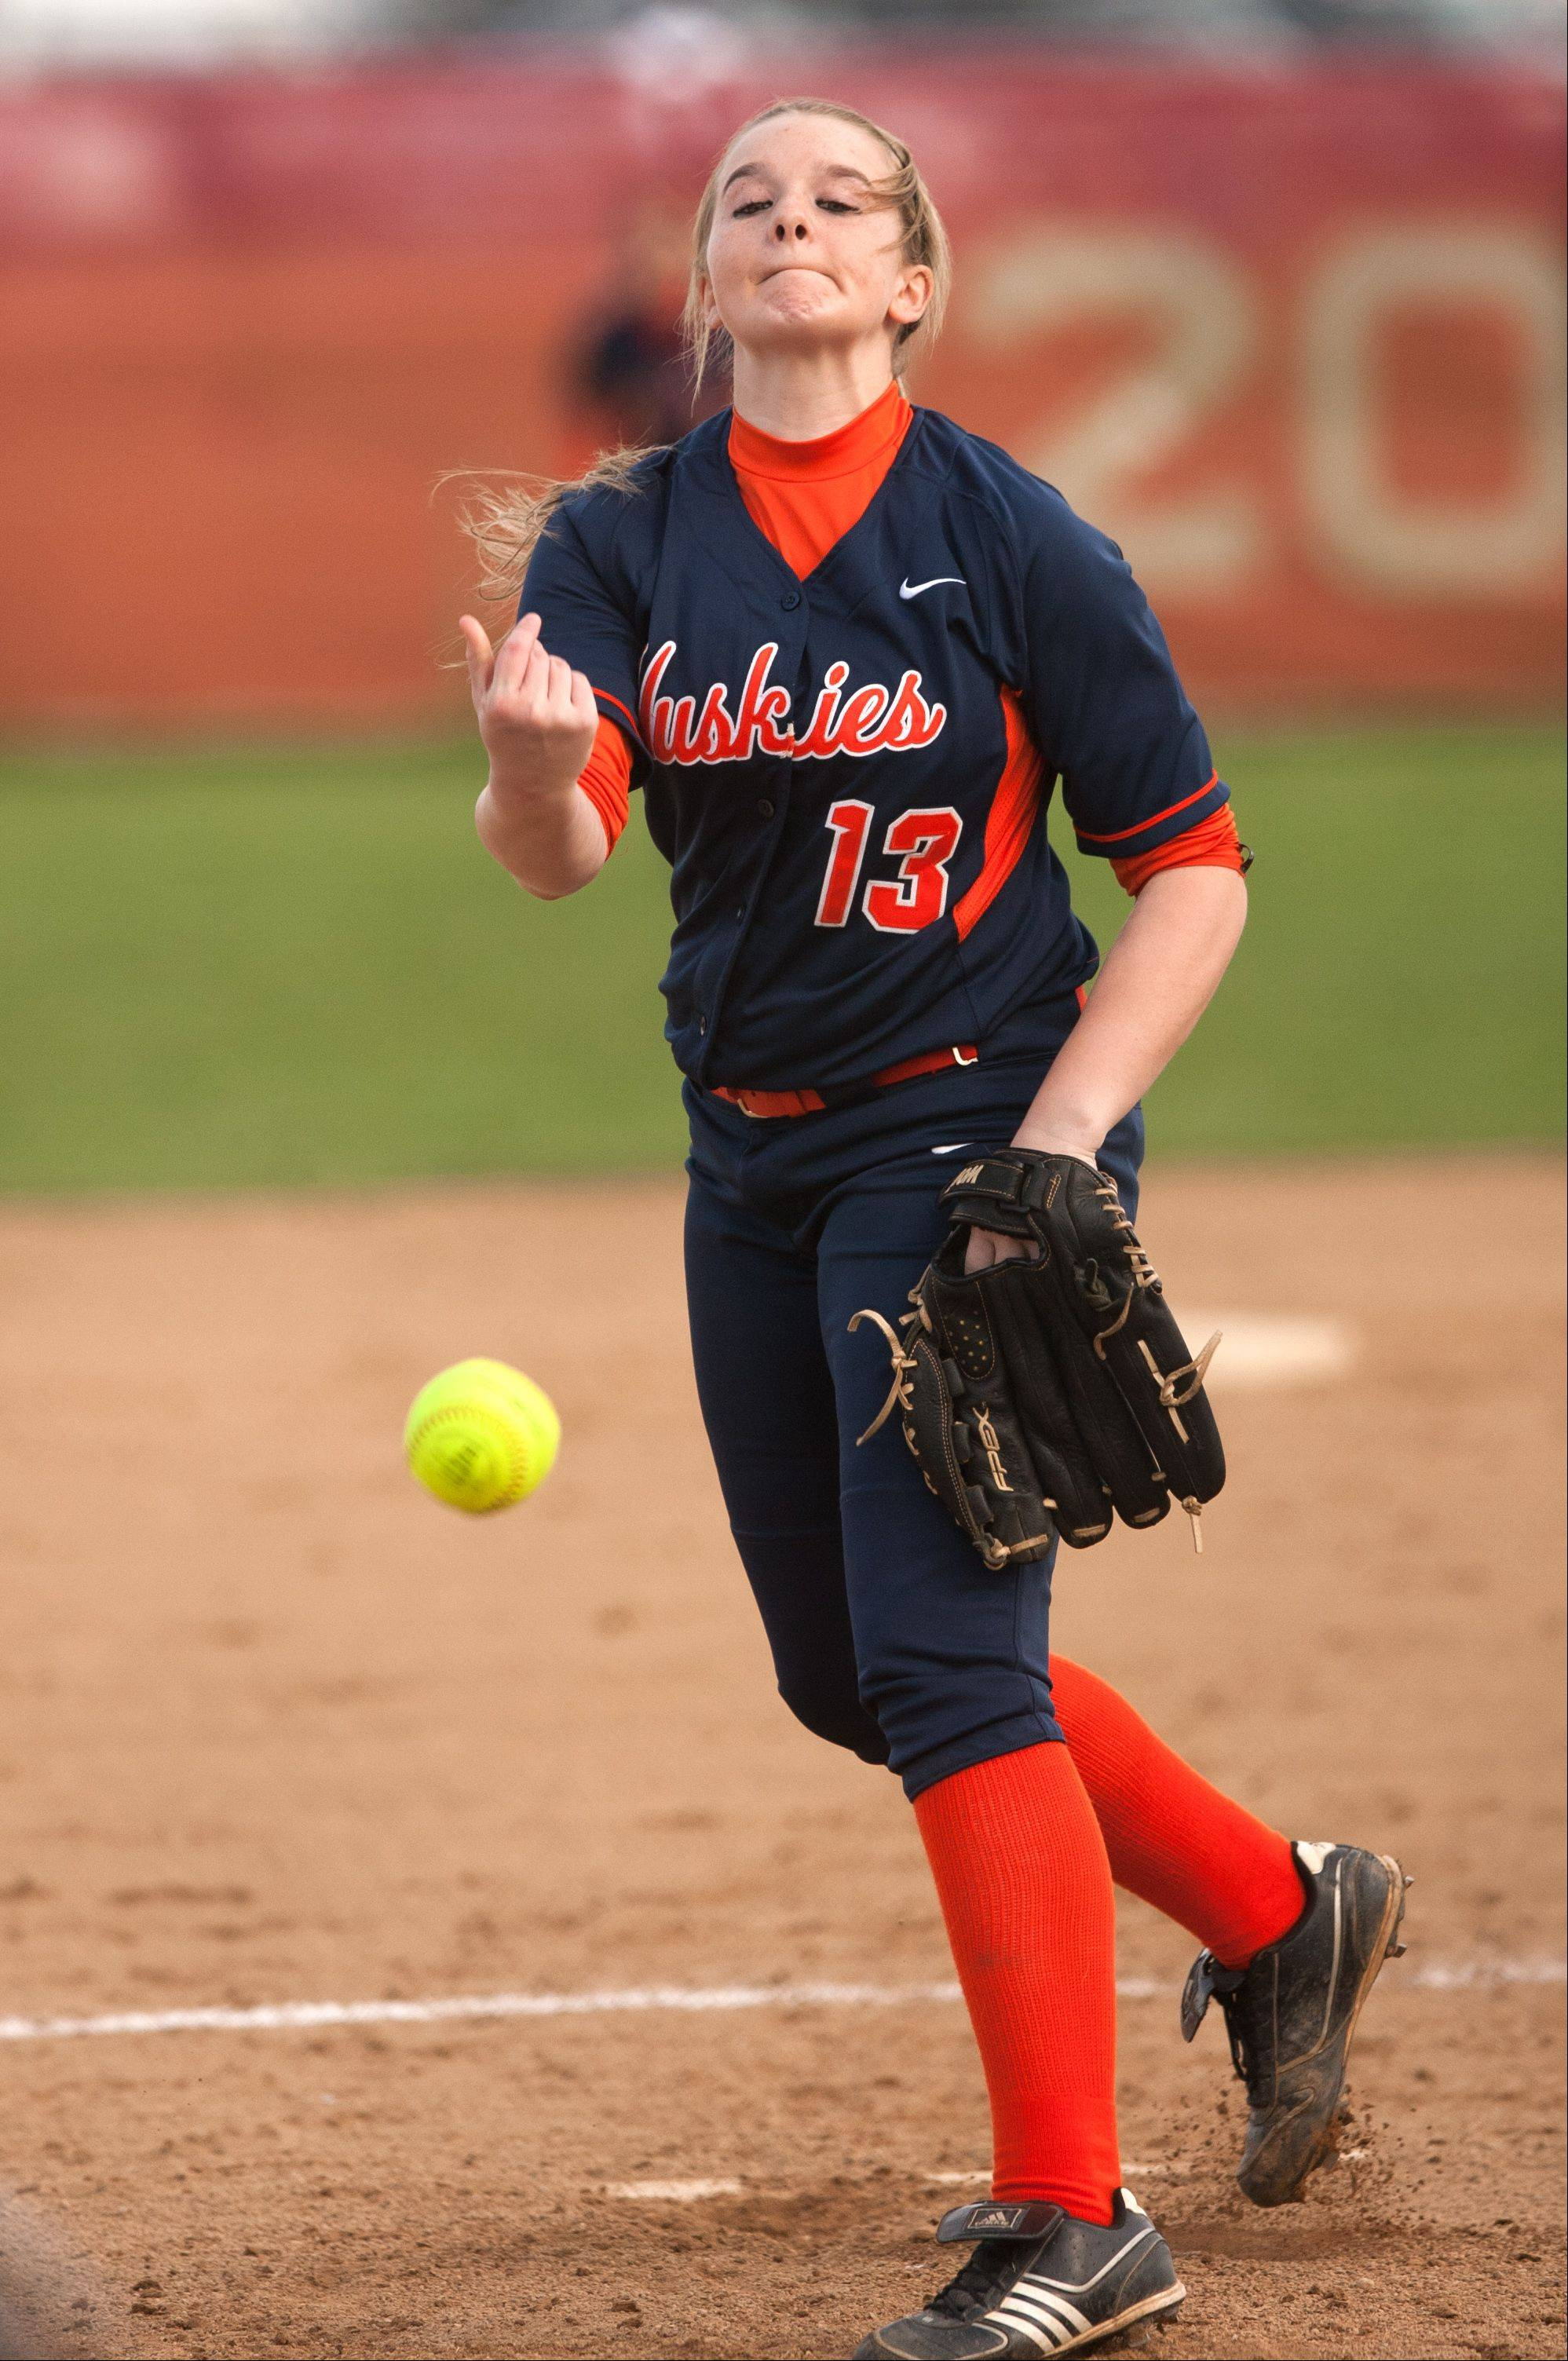 Daniel White/dwhite@dailyherald.comNaperville North pitcher Casey Rechenmacher delivers a pitch against Naperville Central, during girls softball action.